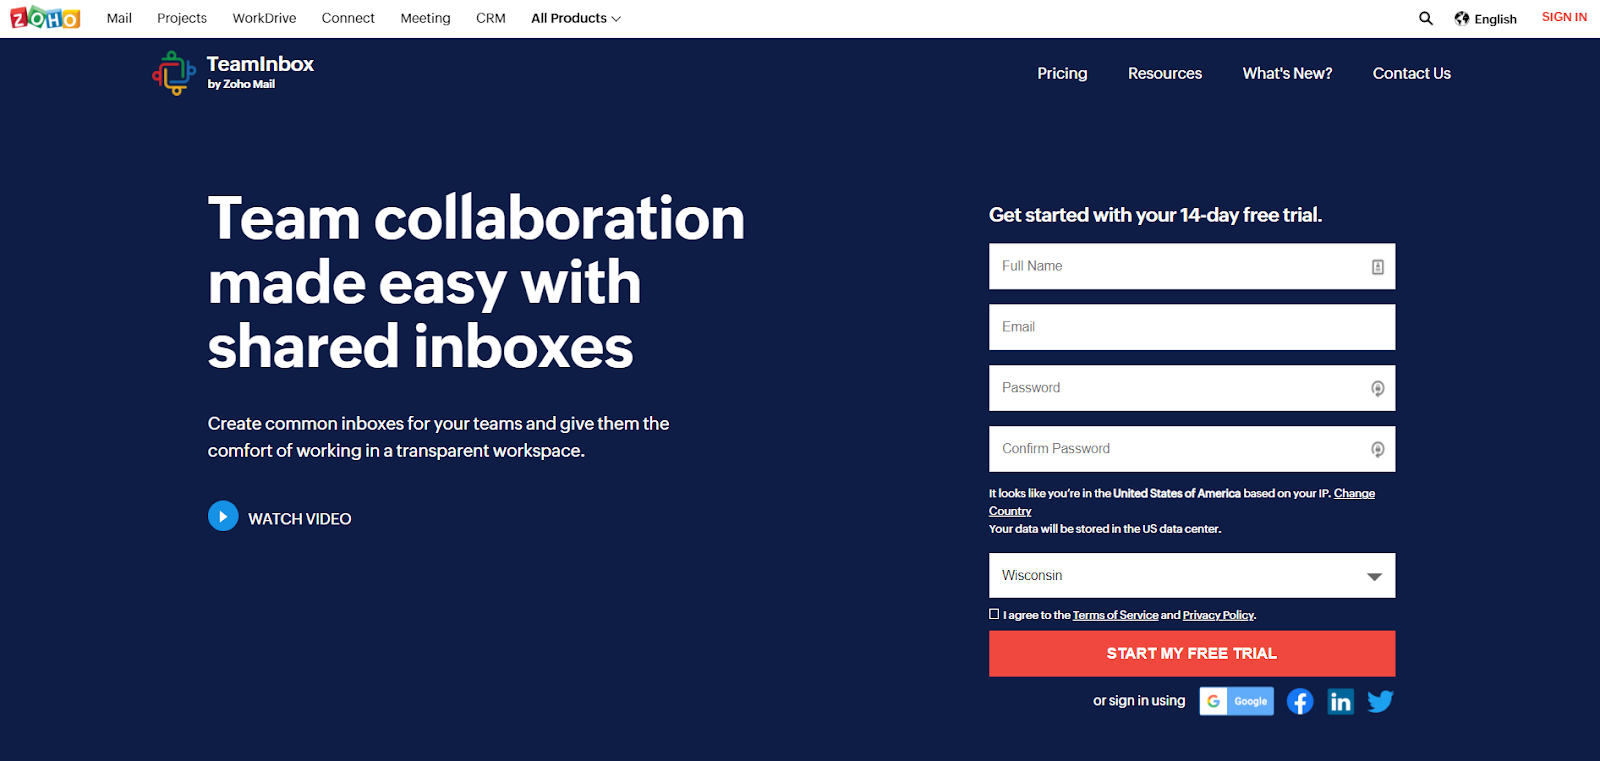 Zoho TeamInbox homepage: Team collaboration made easy with shared inboxes. Create common inboxes for your teams and give them the comfort of working in a transparent workspace.